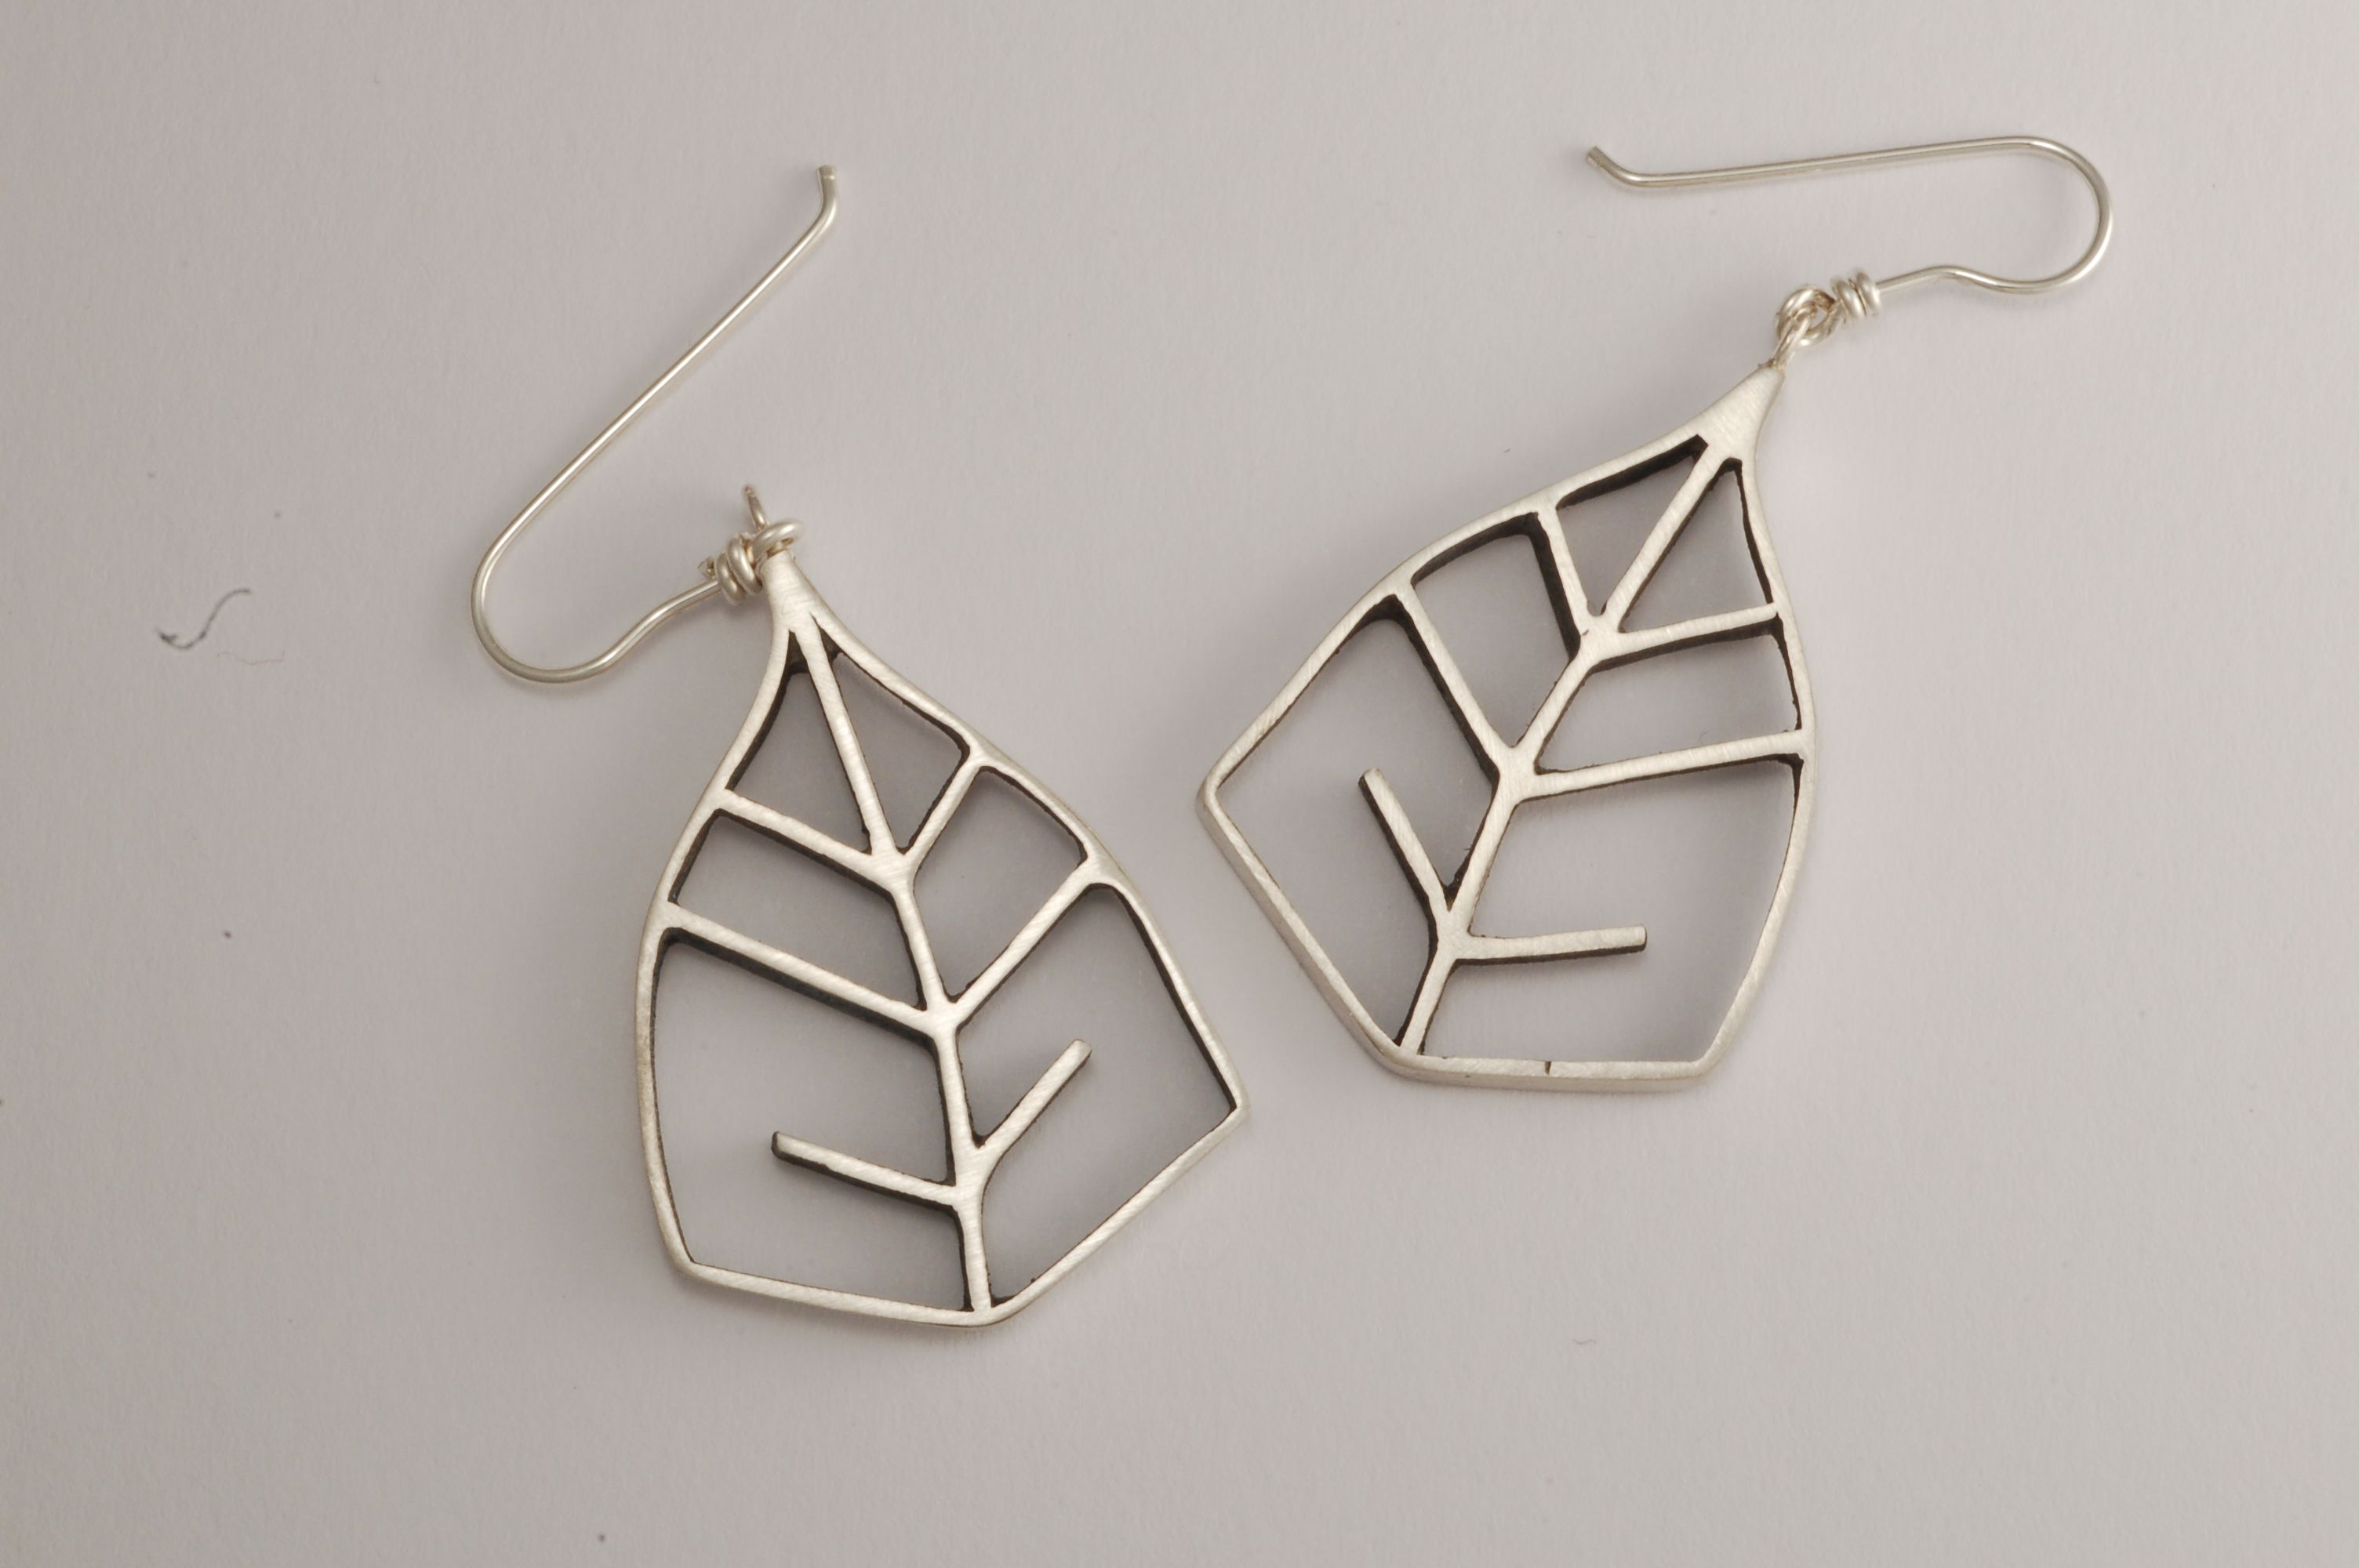 Handcrafted sterling silver paper birch leaf drop earrings $120 at andreamueller.ca.